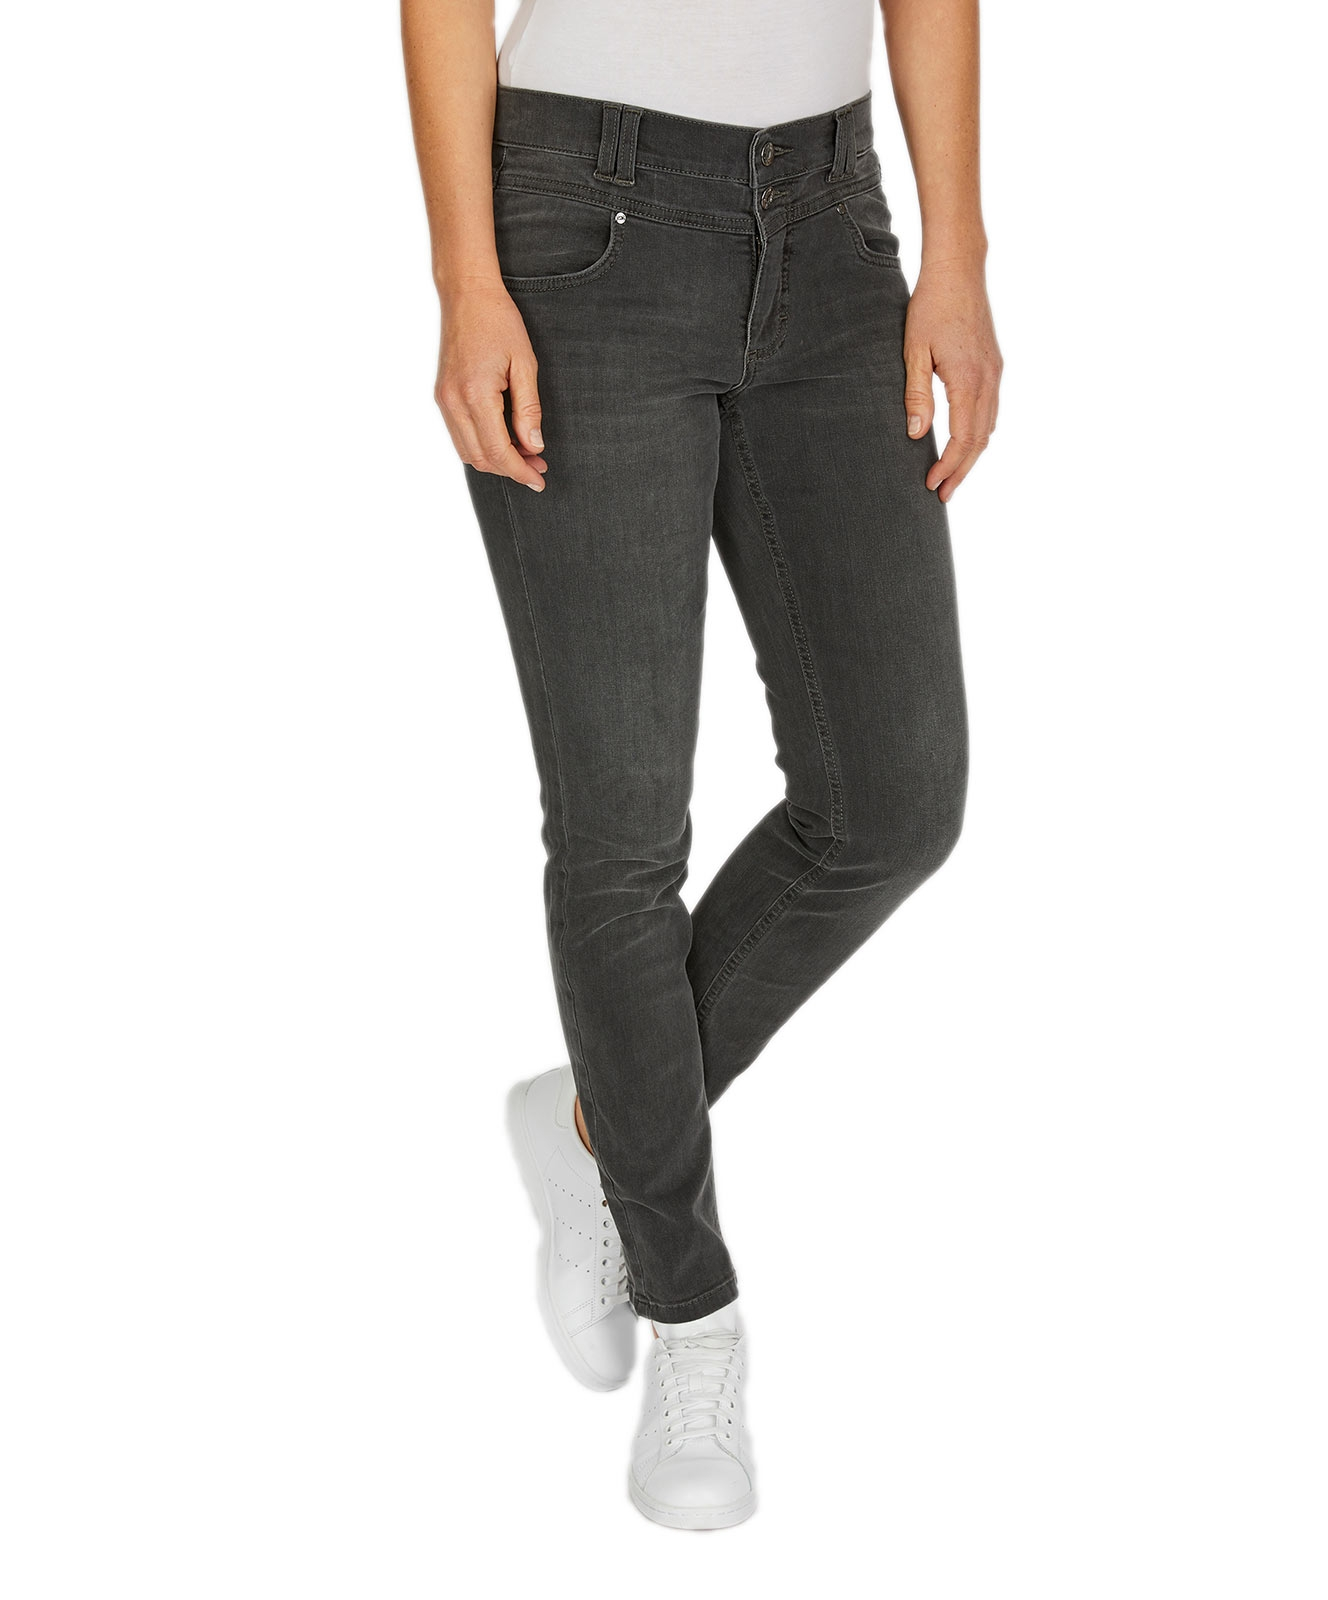 Hosen - Angels Skinny Jeans Skinny Button in Grey Used Crinkle  - Onlineshop Jeans Meile